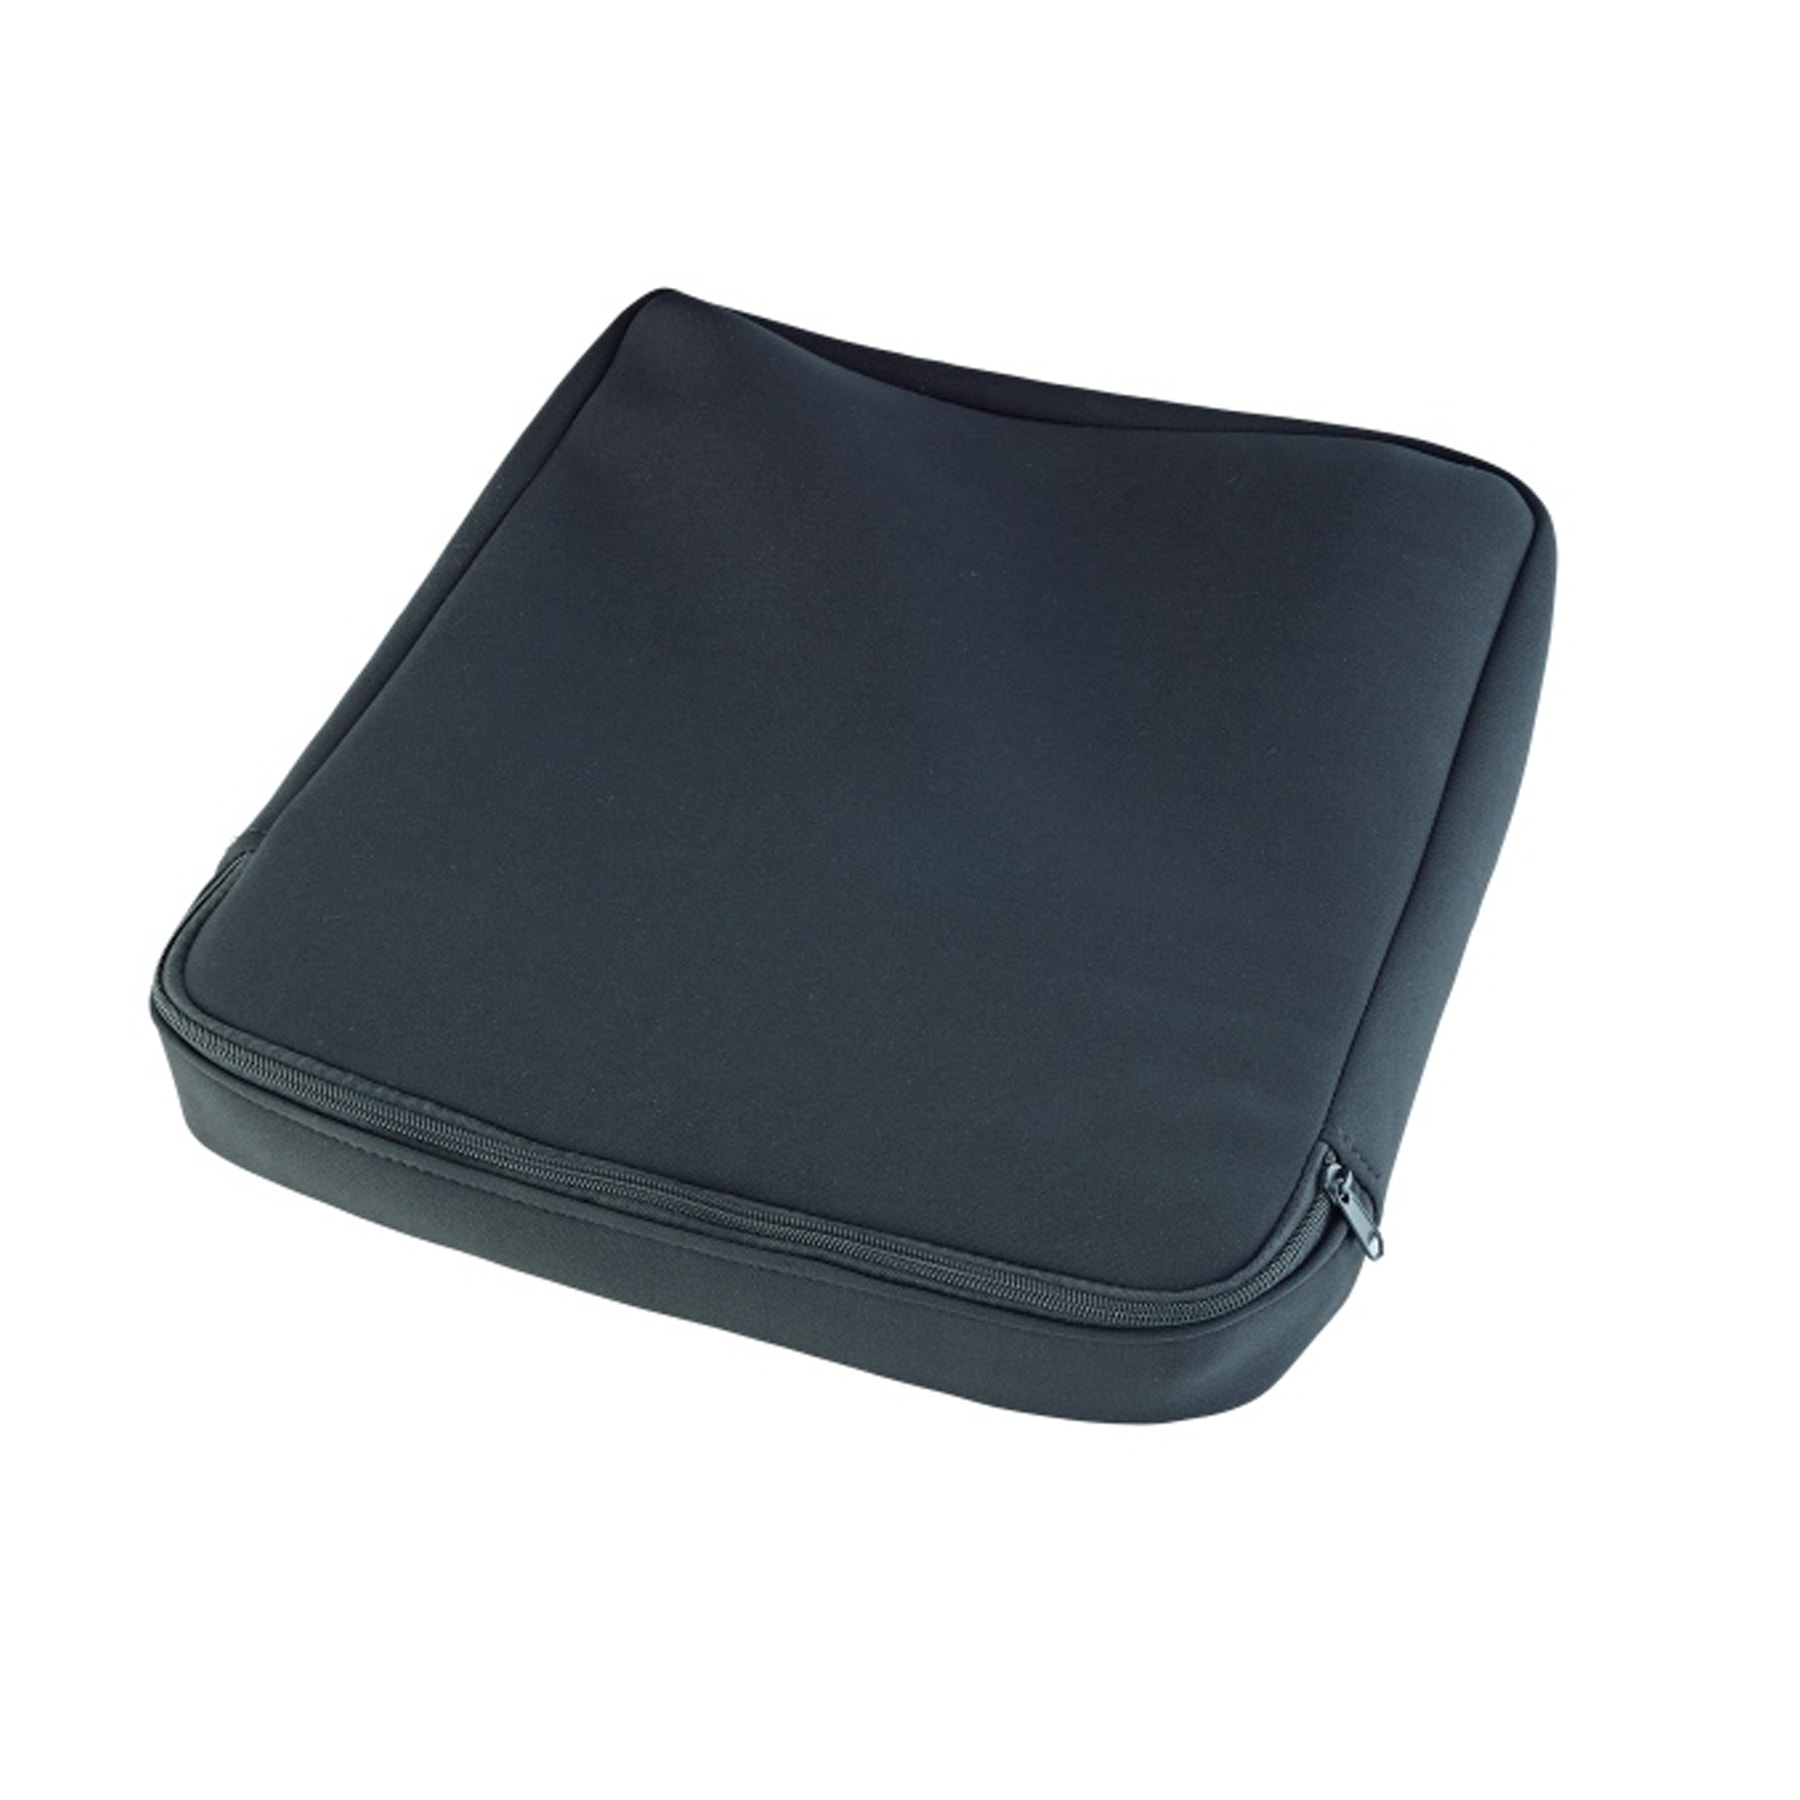 KM12199 - Carrying case